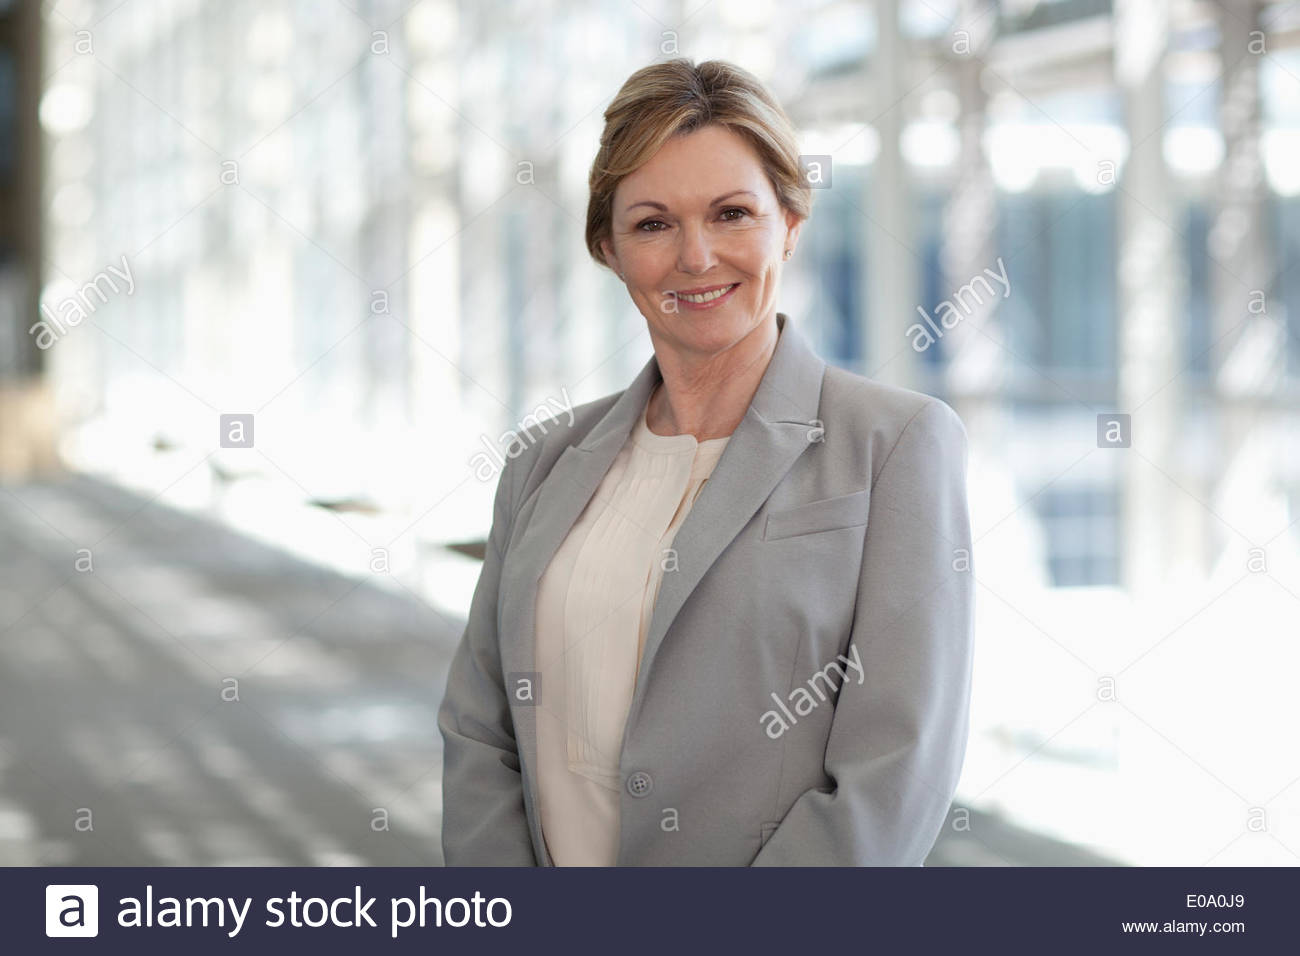 Smiling businesswoman Photo Stock